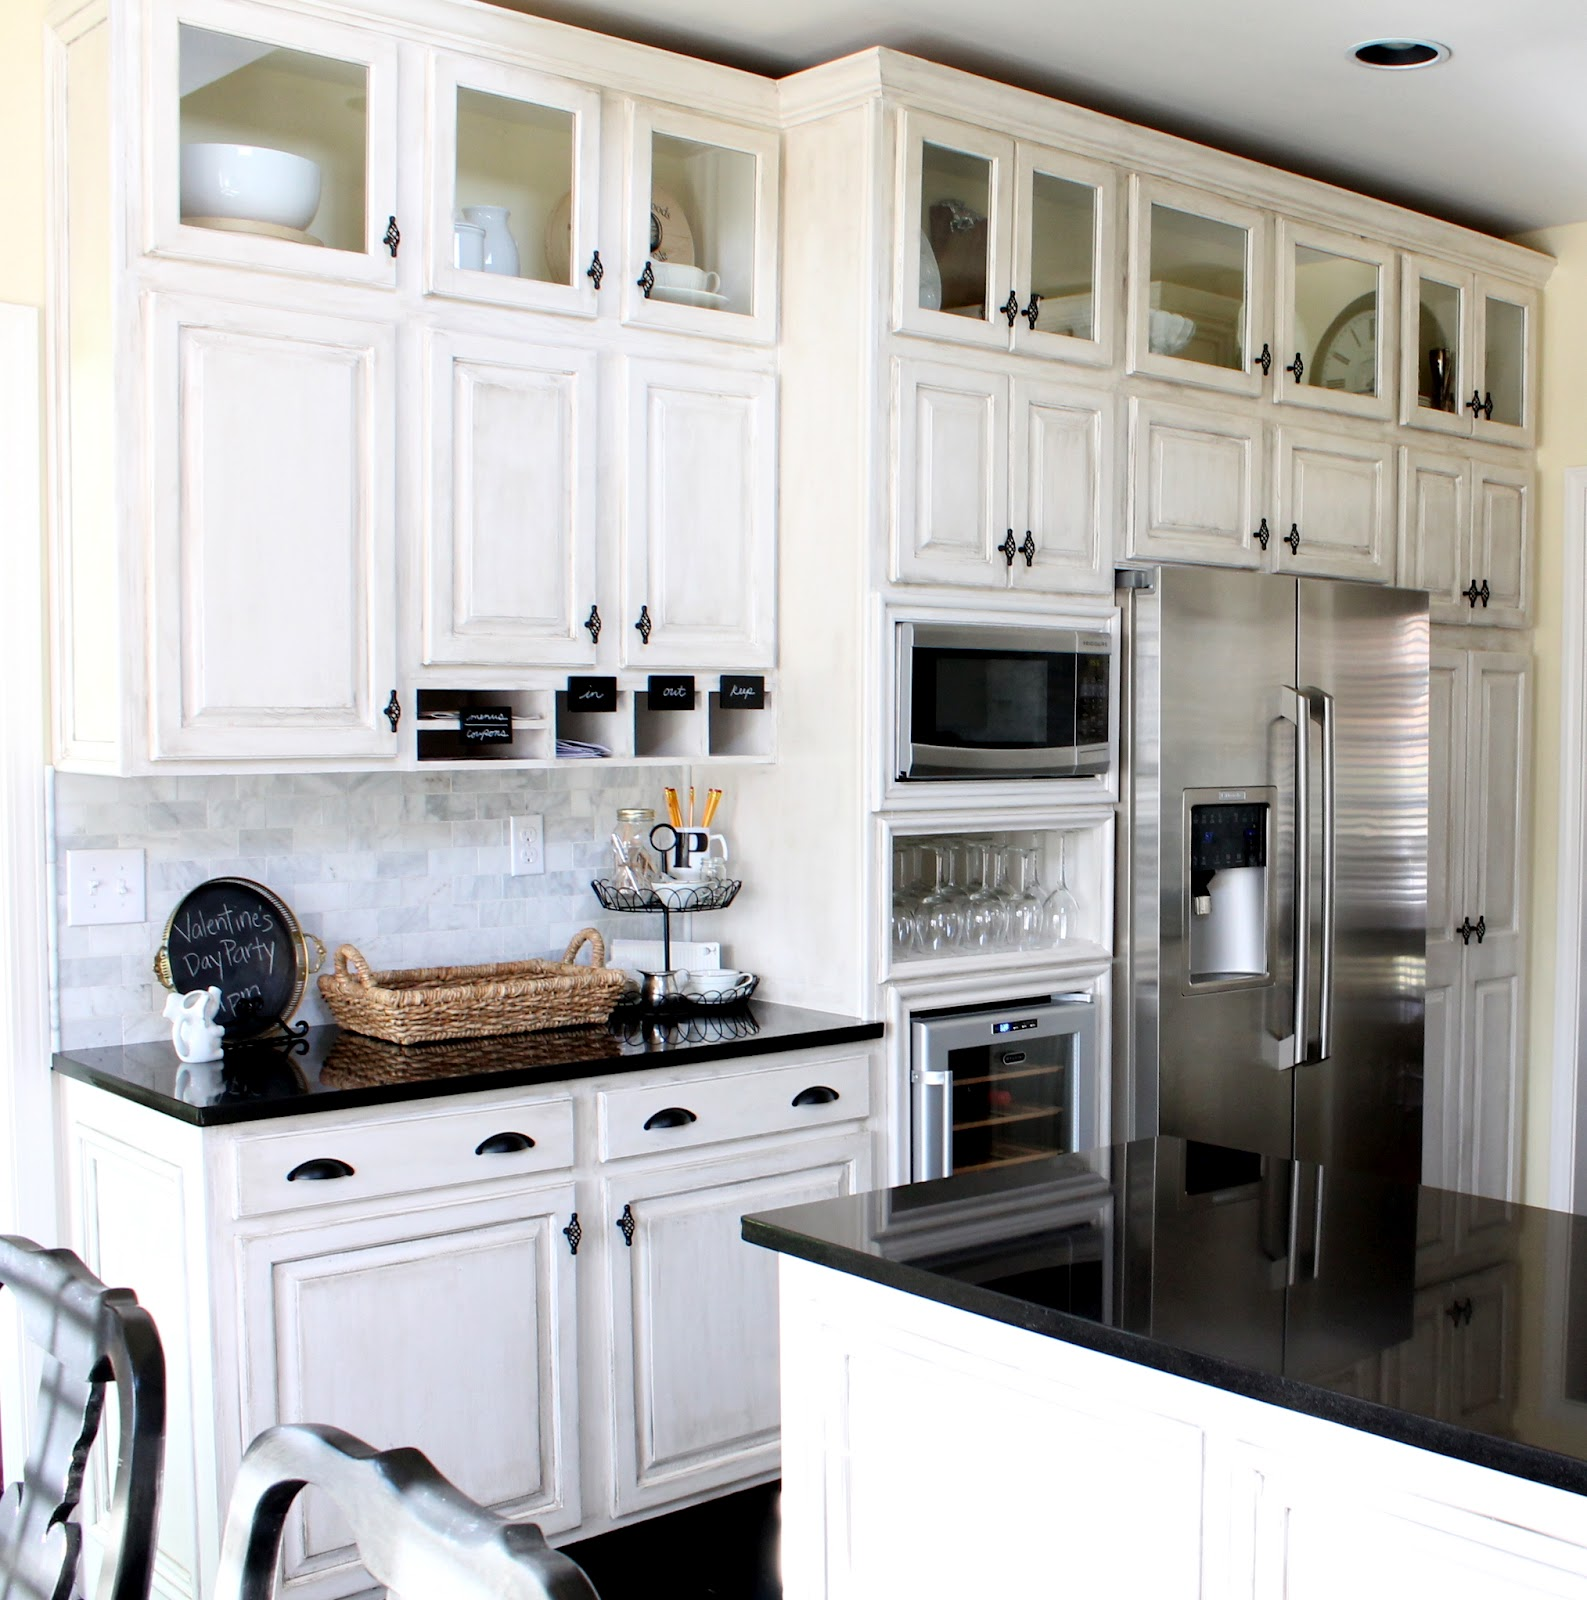 cabinets 80+ Unusual Kitchen Design Ideas for Small Spaces in 2021